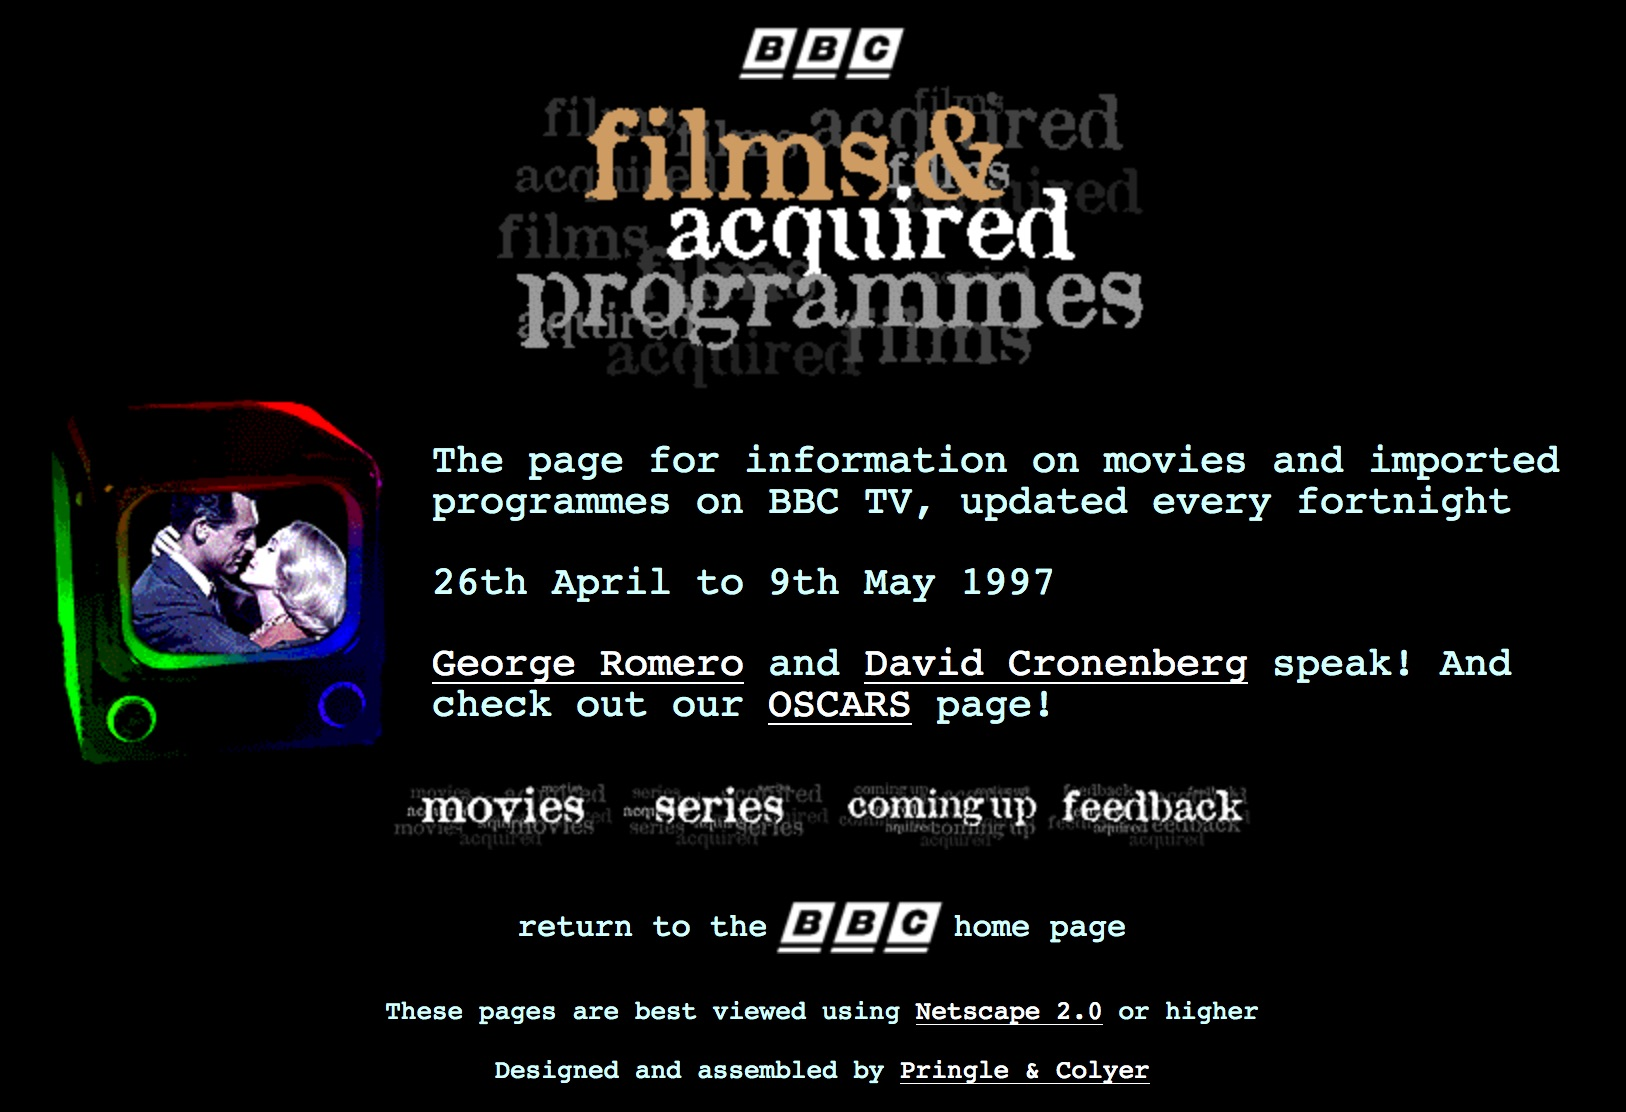 BBC.co.uk movies page (1997)